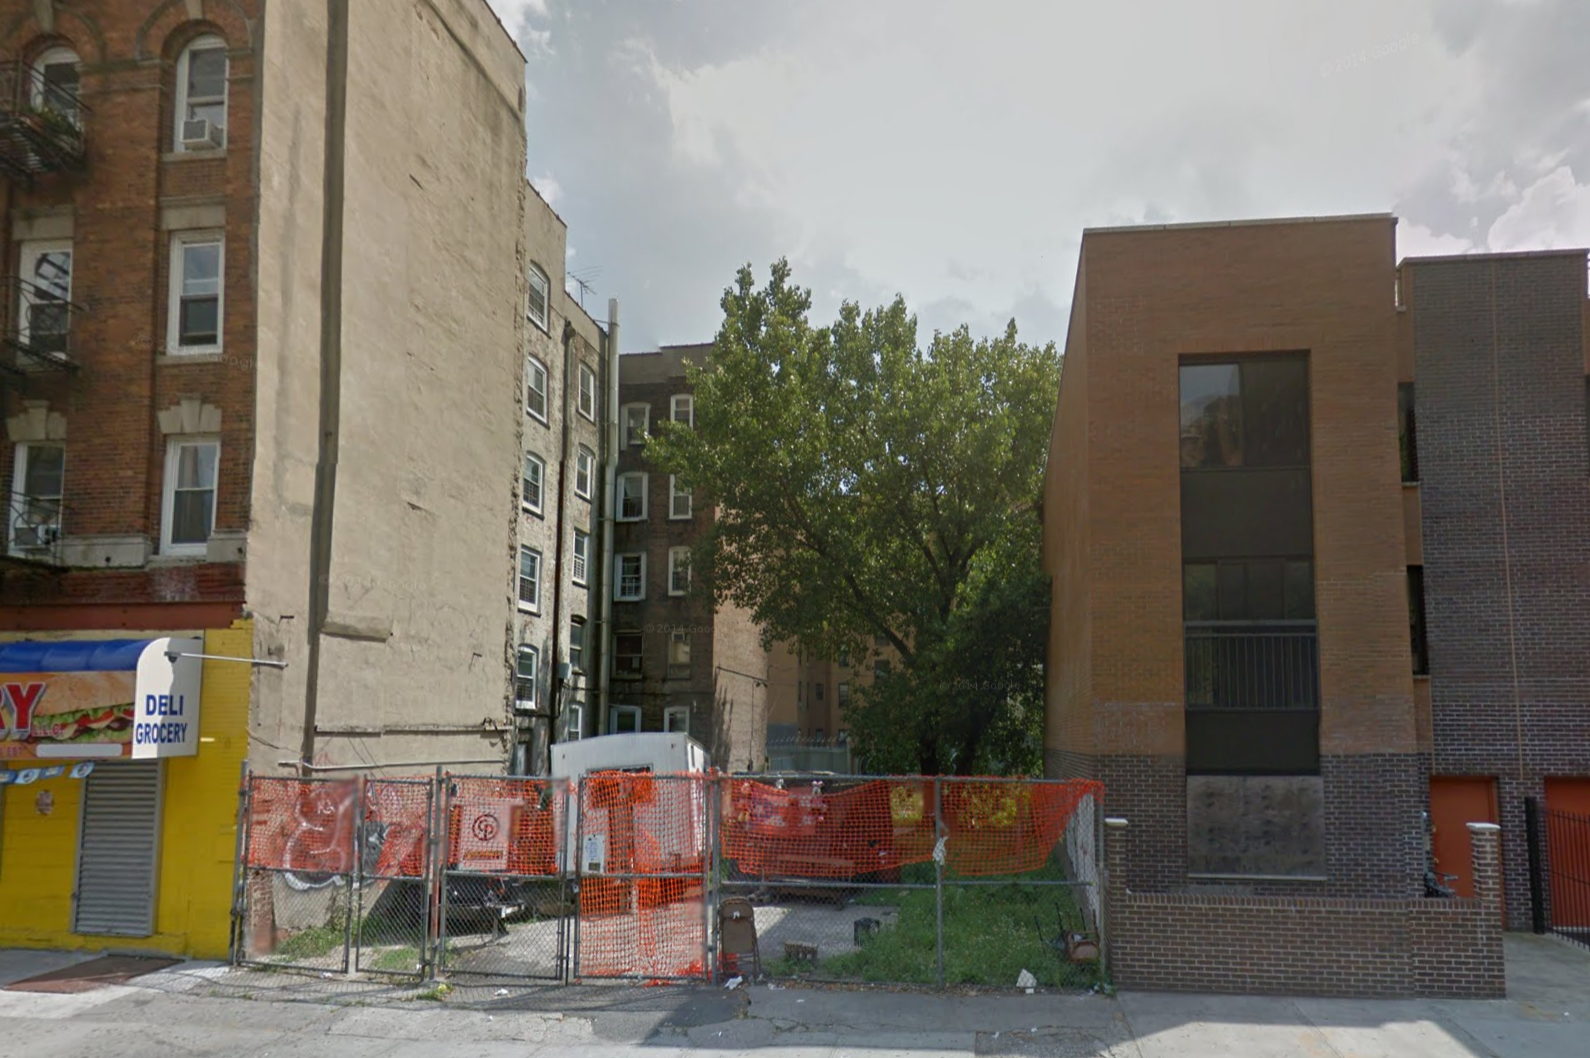 764 East 152nd Street, image via Google Maps